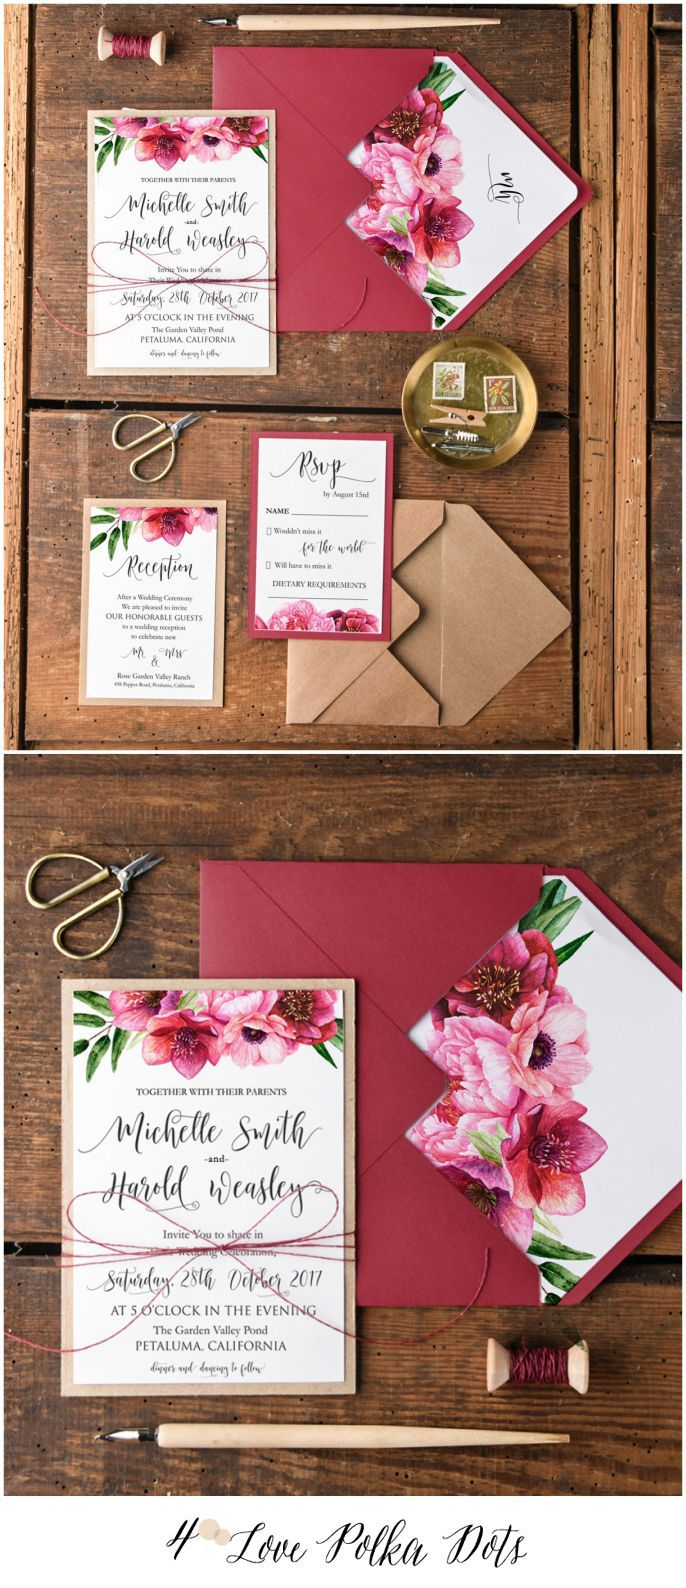 WEDDING INVITATIONS watercolor | Wedding Invitation | Pinterest ...